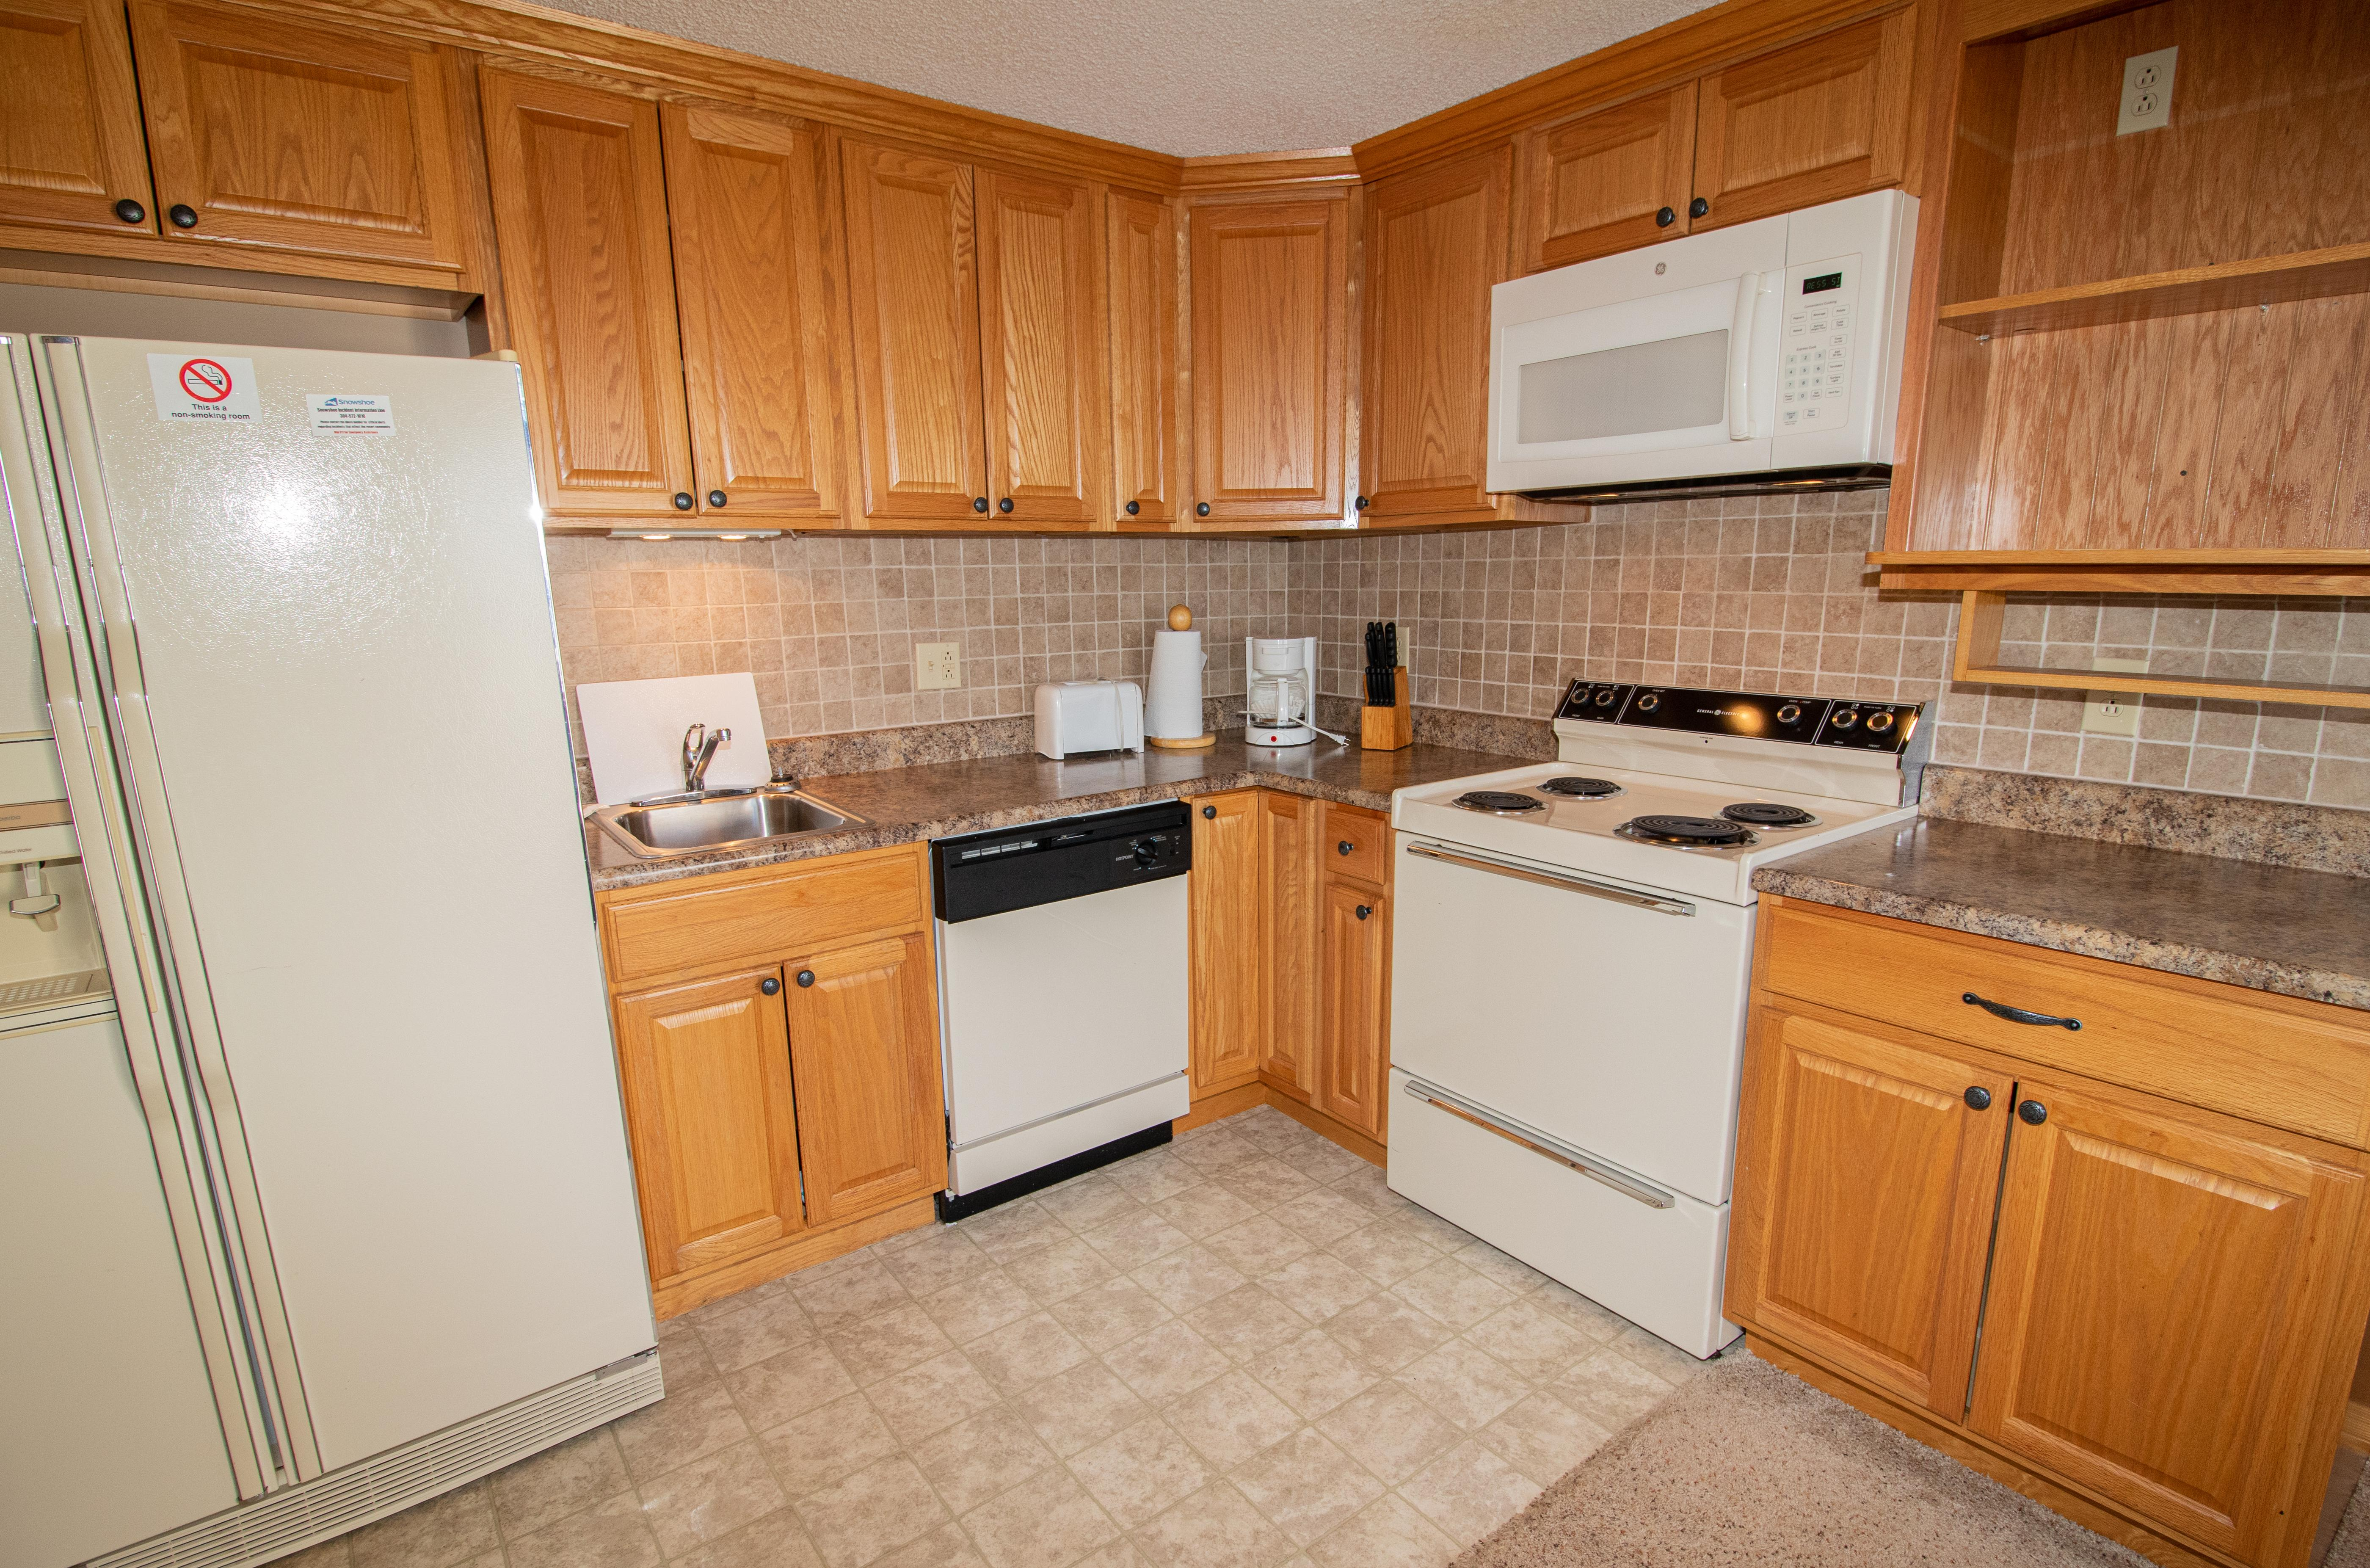 Remodeled kitchen is fully equipped - cook meals in your condo!